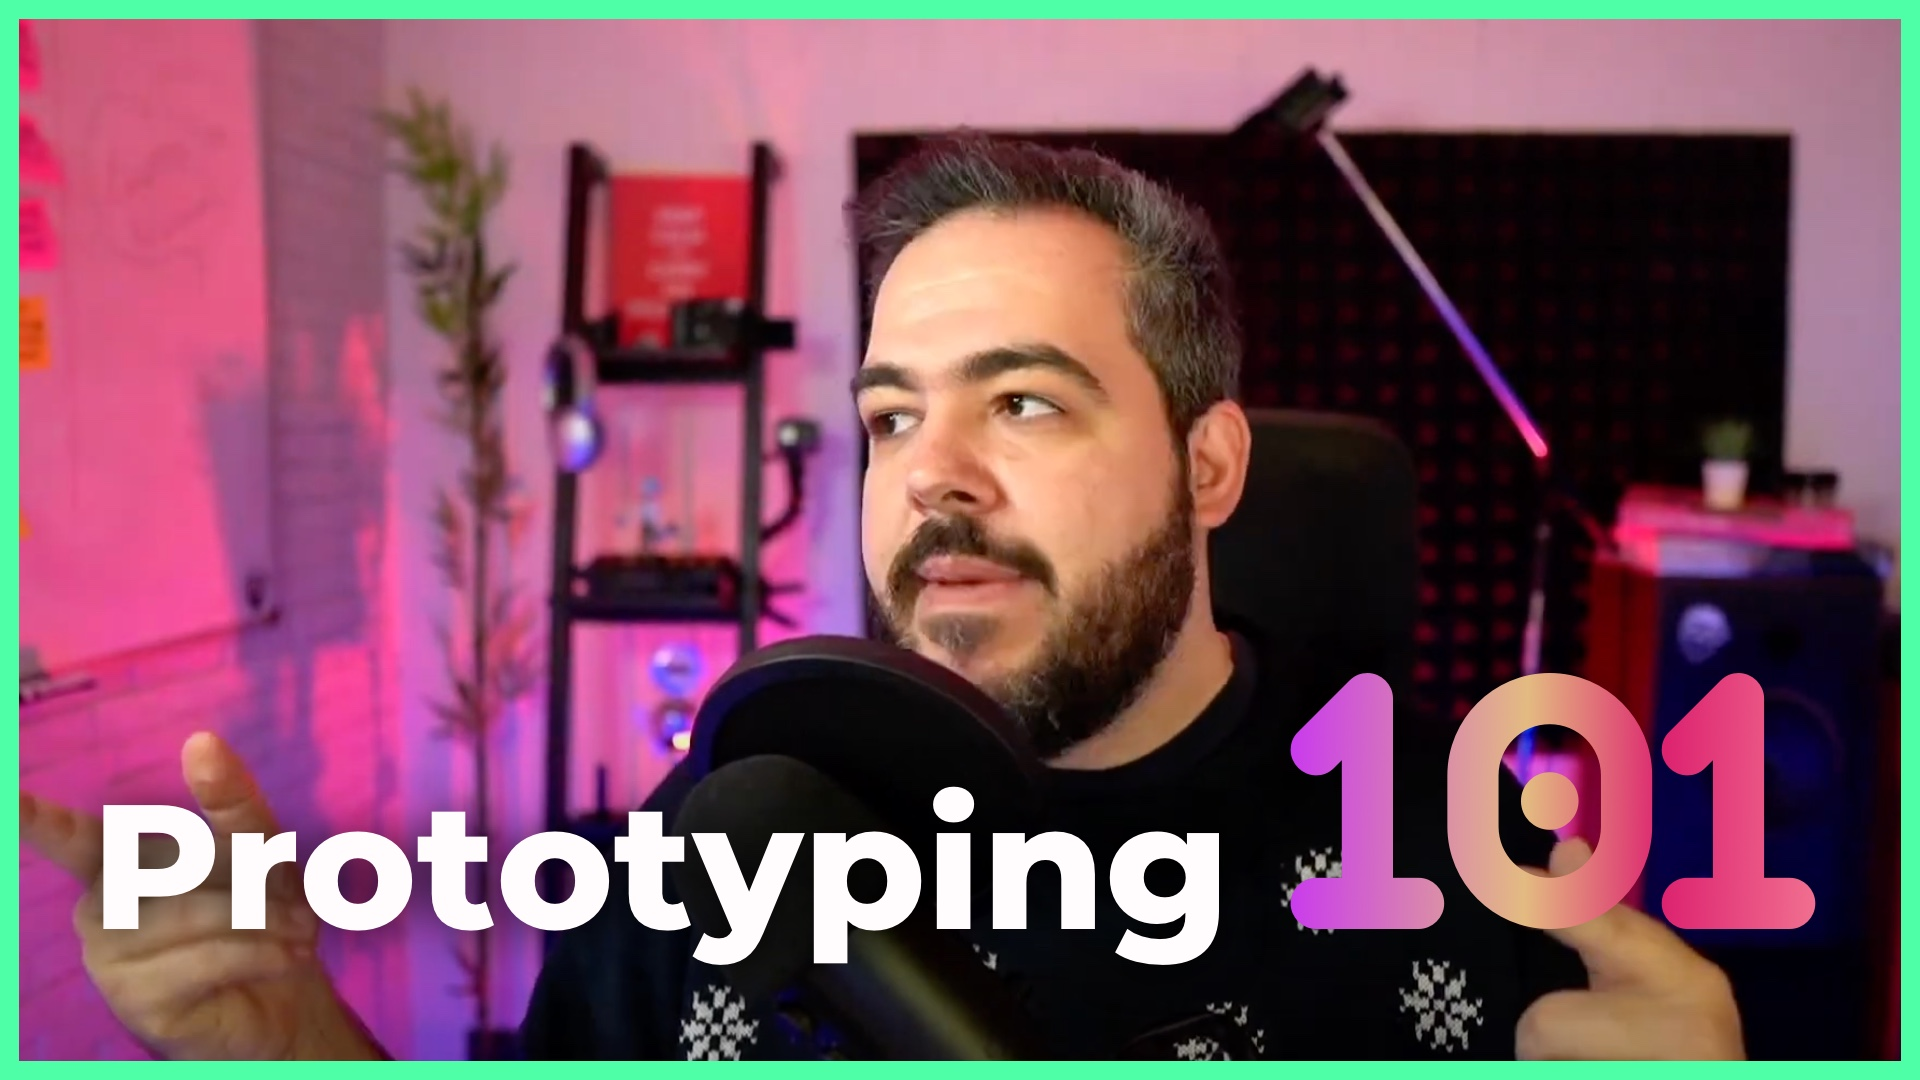 Prototyping 101 - Design with klou on YouTube